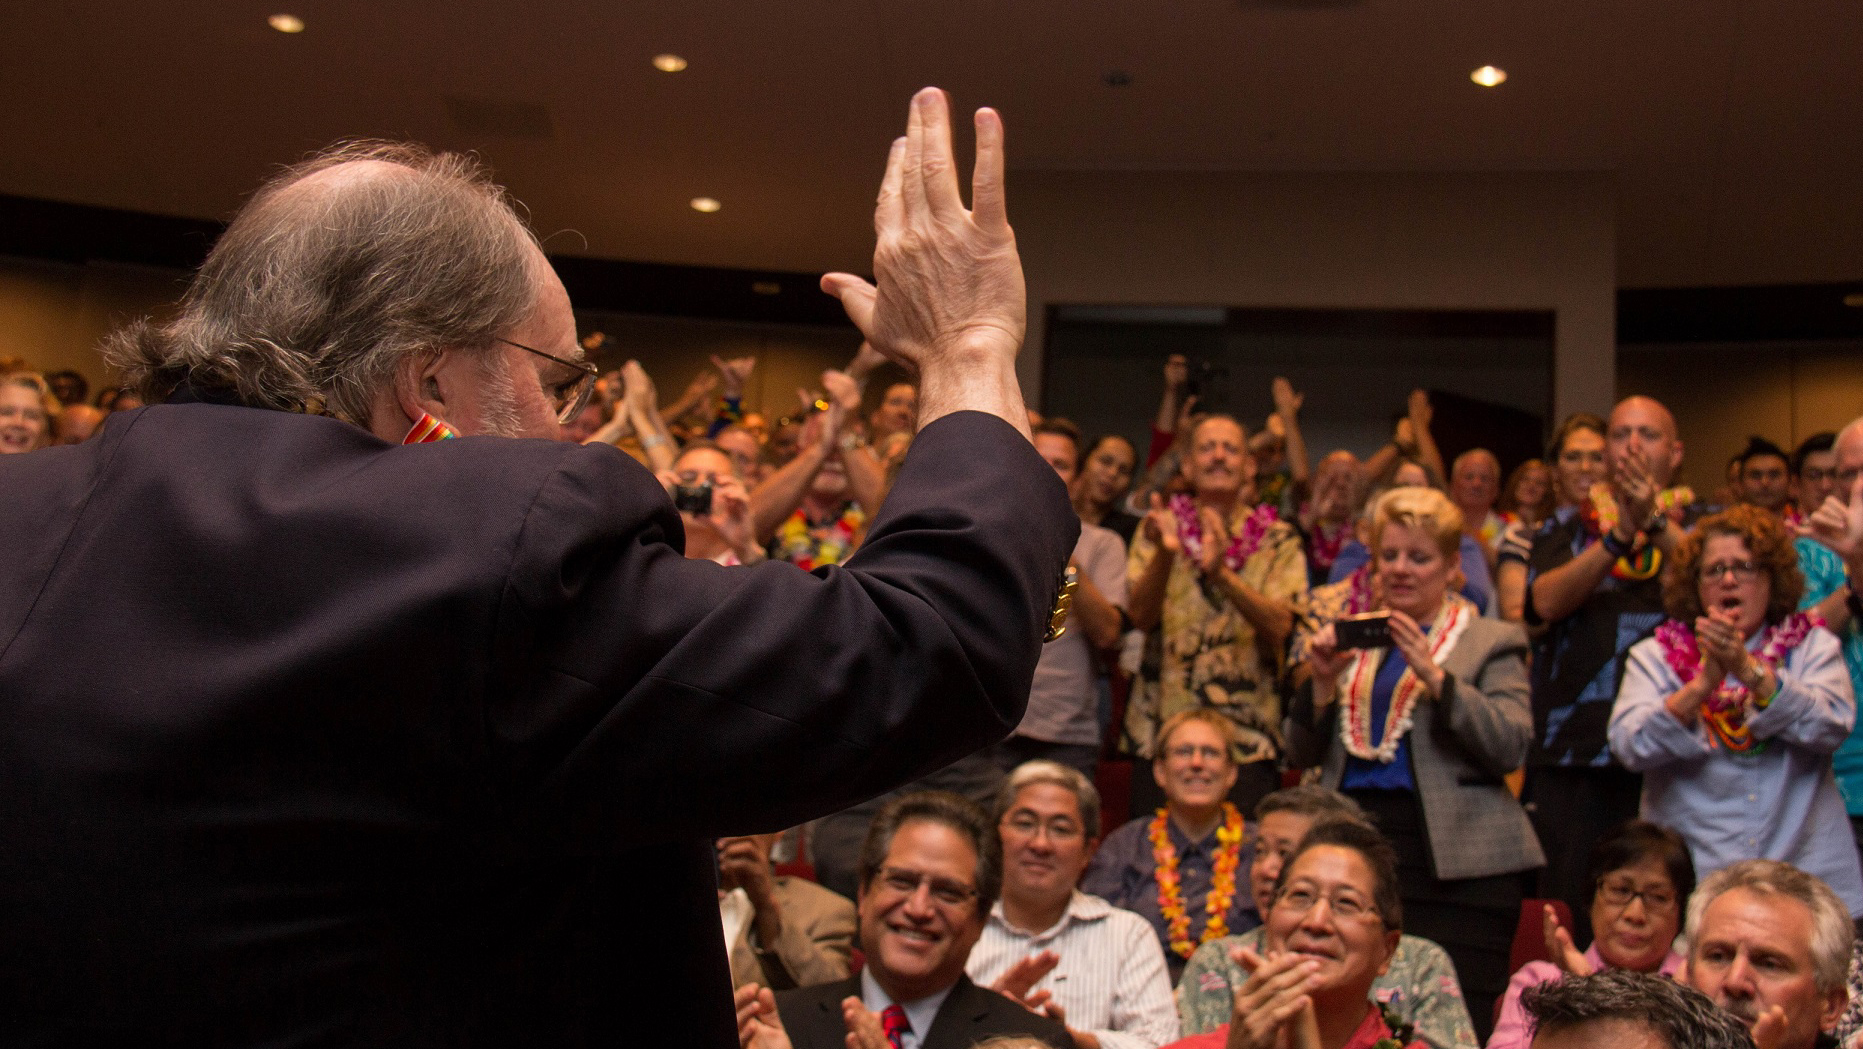 Hawaii becomes 15th state to legalize gay marriage